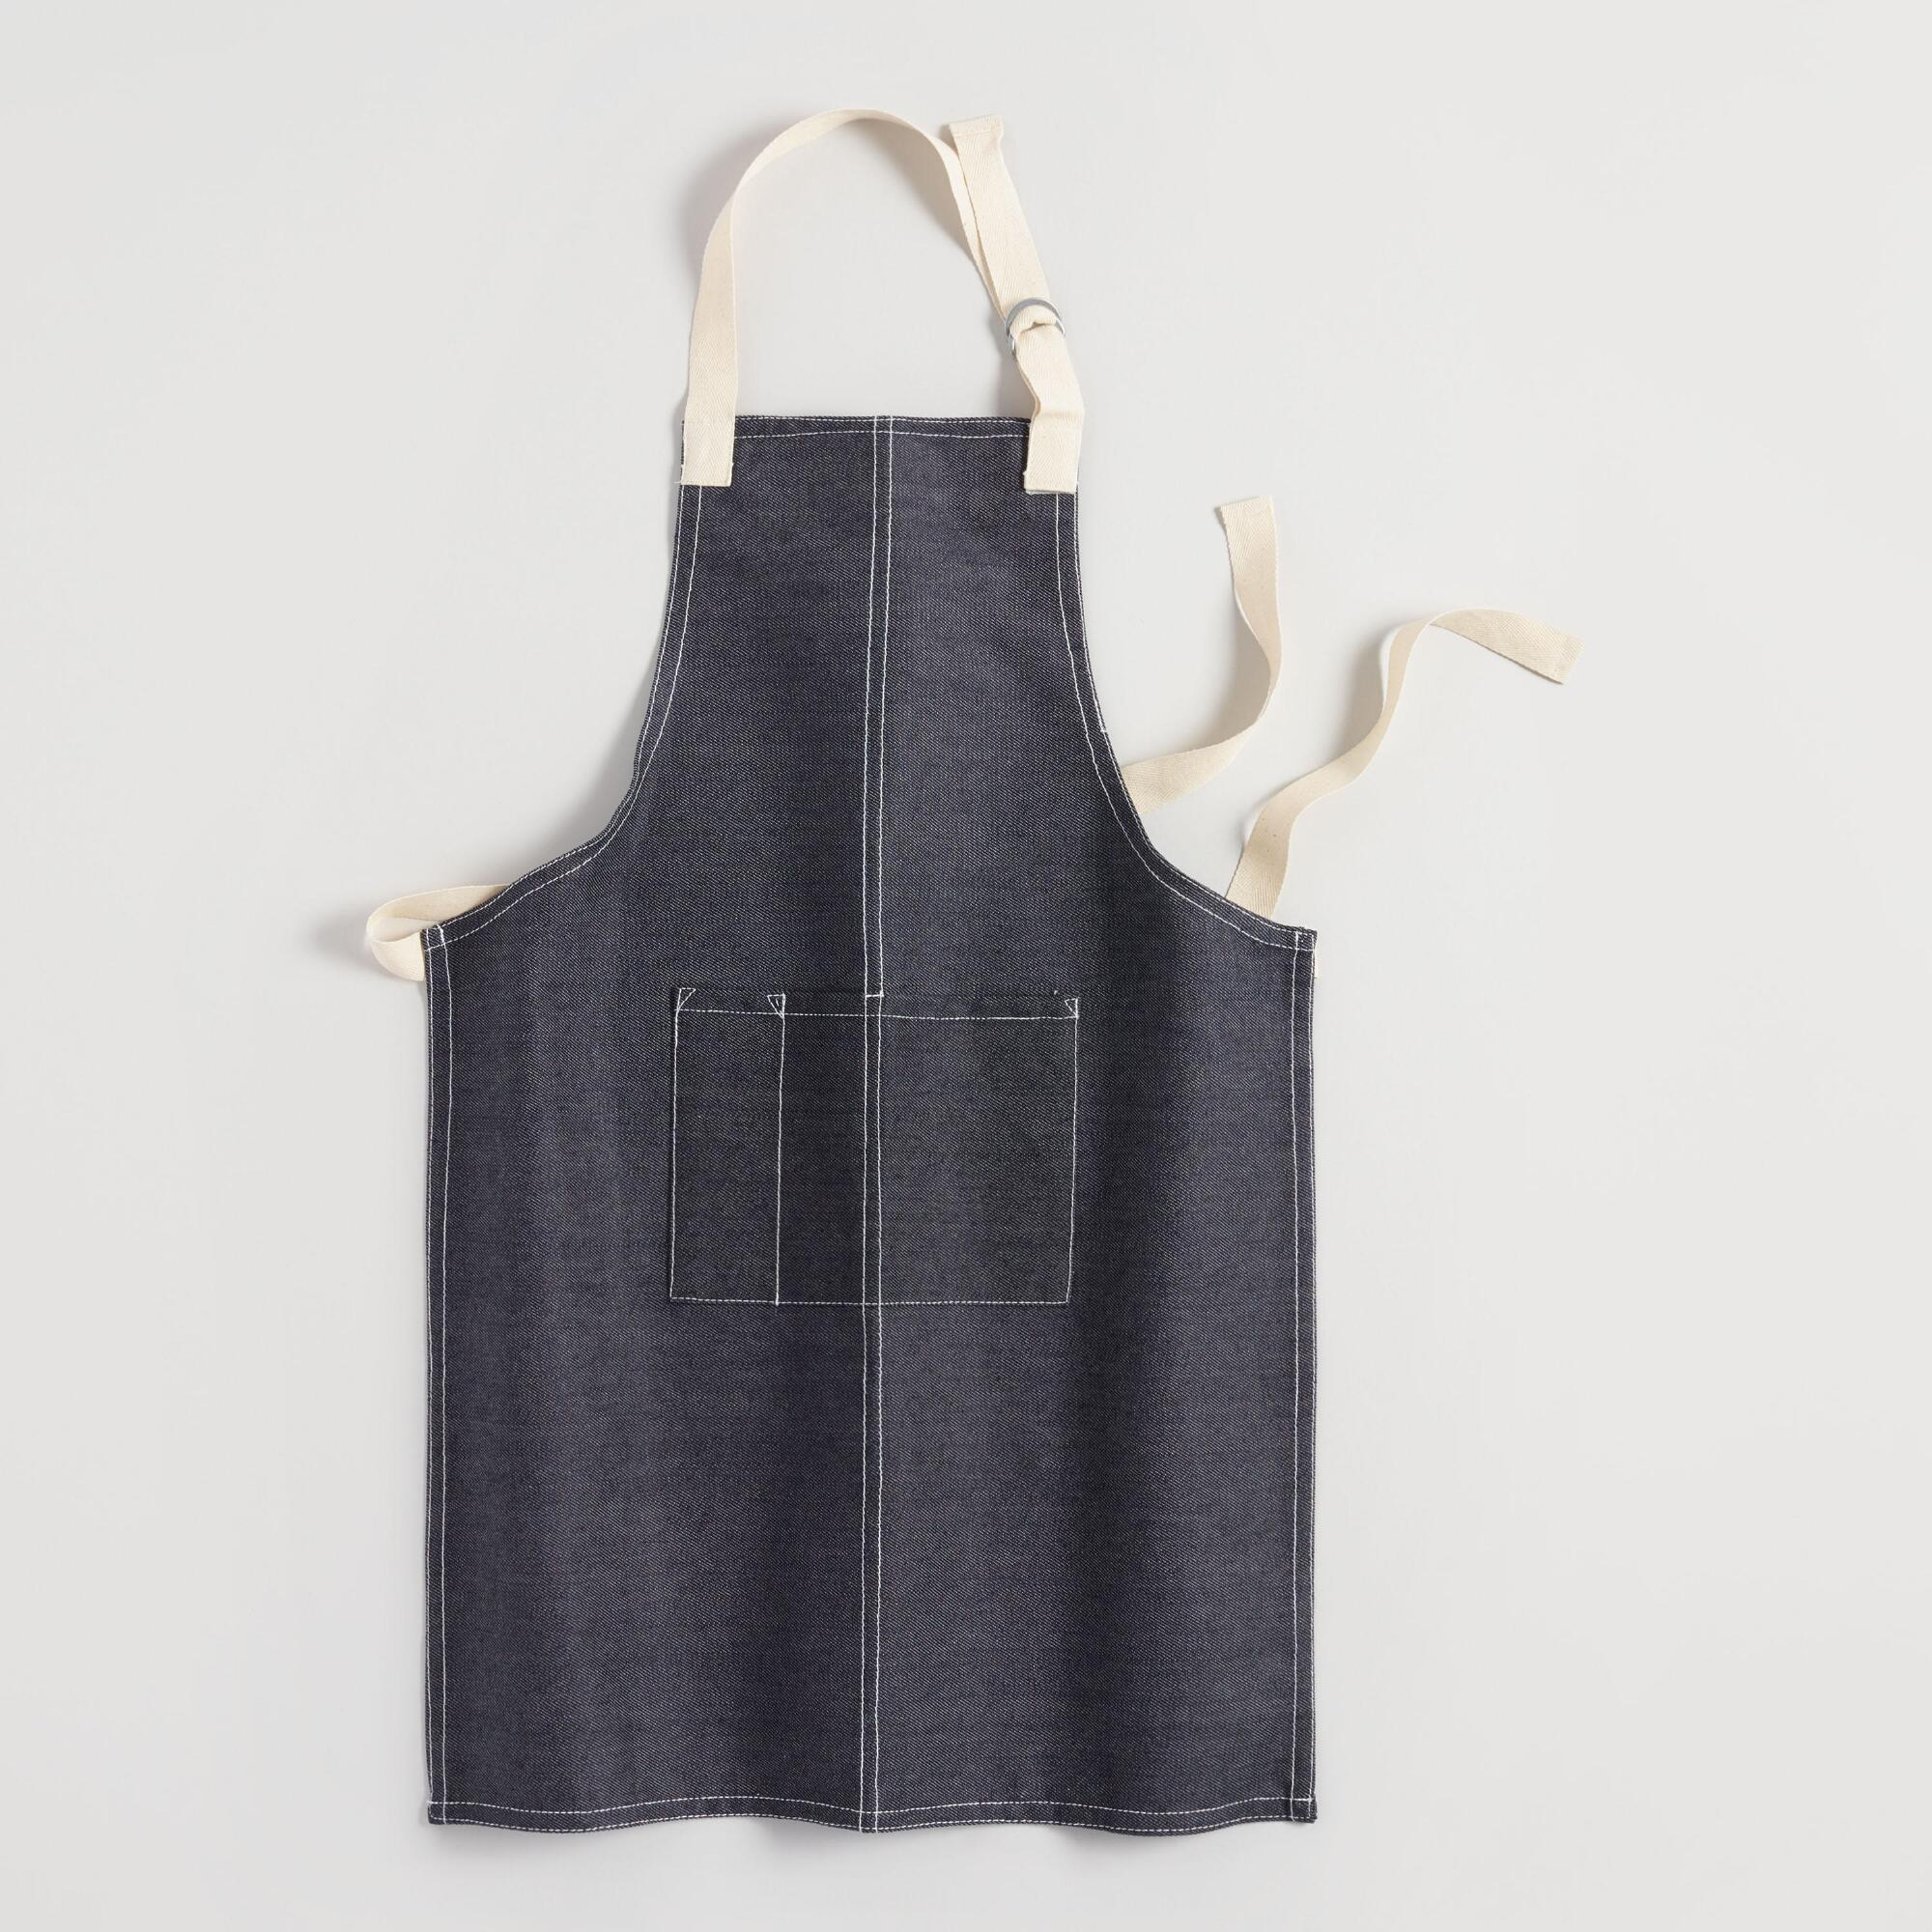 Vintage Aprons, Retro Aprons, Old Fashioned Aprons & Patterns Kids Denim Apron Blue - Cotton by World Market $14.99 AT vintagedancer.com